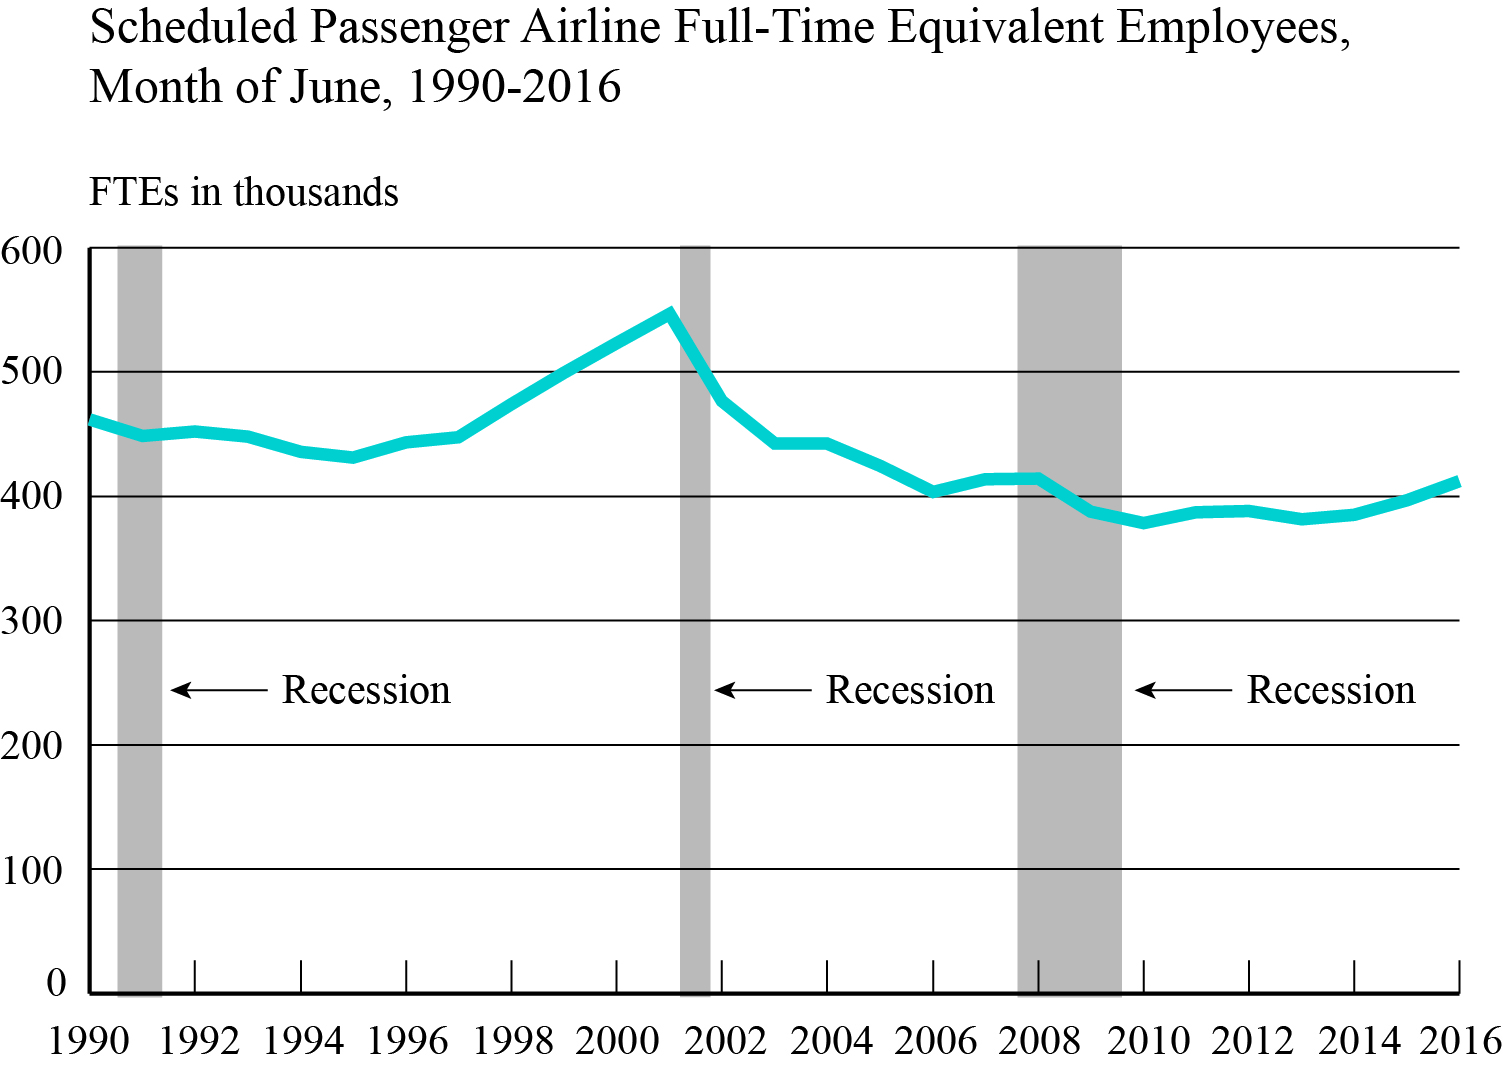 Scheduled Passenger Airline Full-Time Equivalent Employees, Month of June, 1990-2016